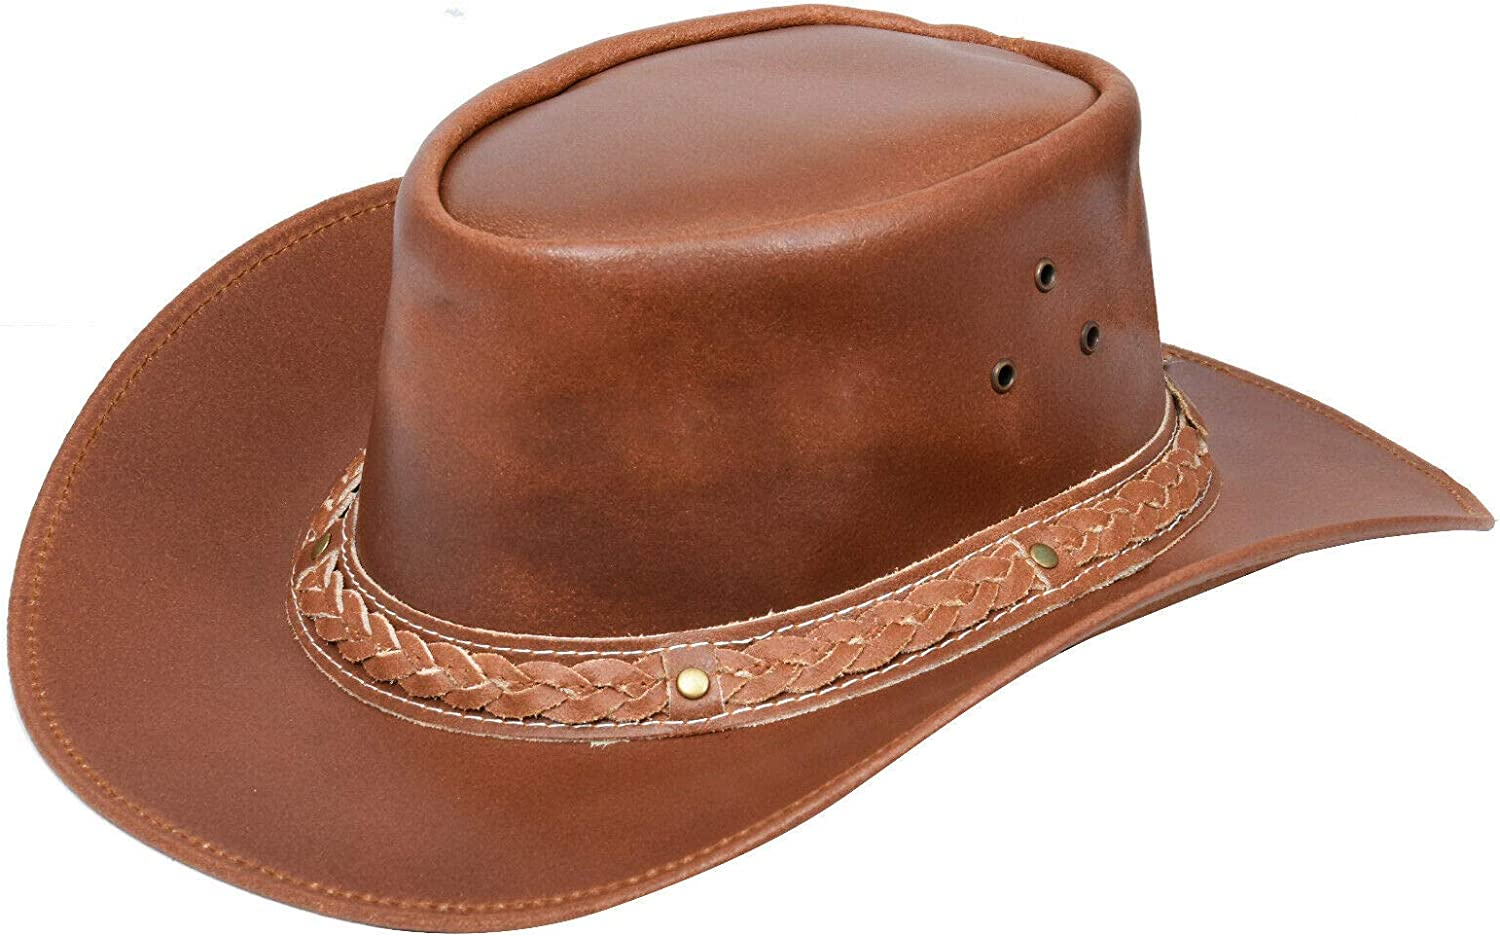 Australian Tan Western Style Cowboy Leather Real Aussie Sale Inventory cleanup selling sale Special Price Outback